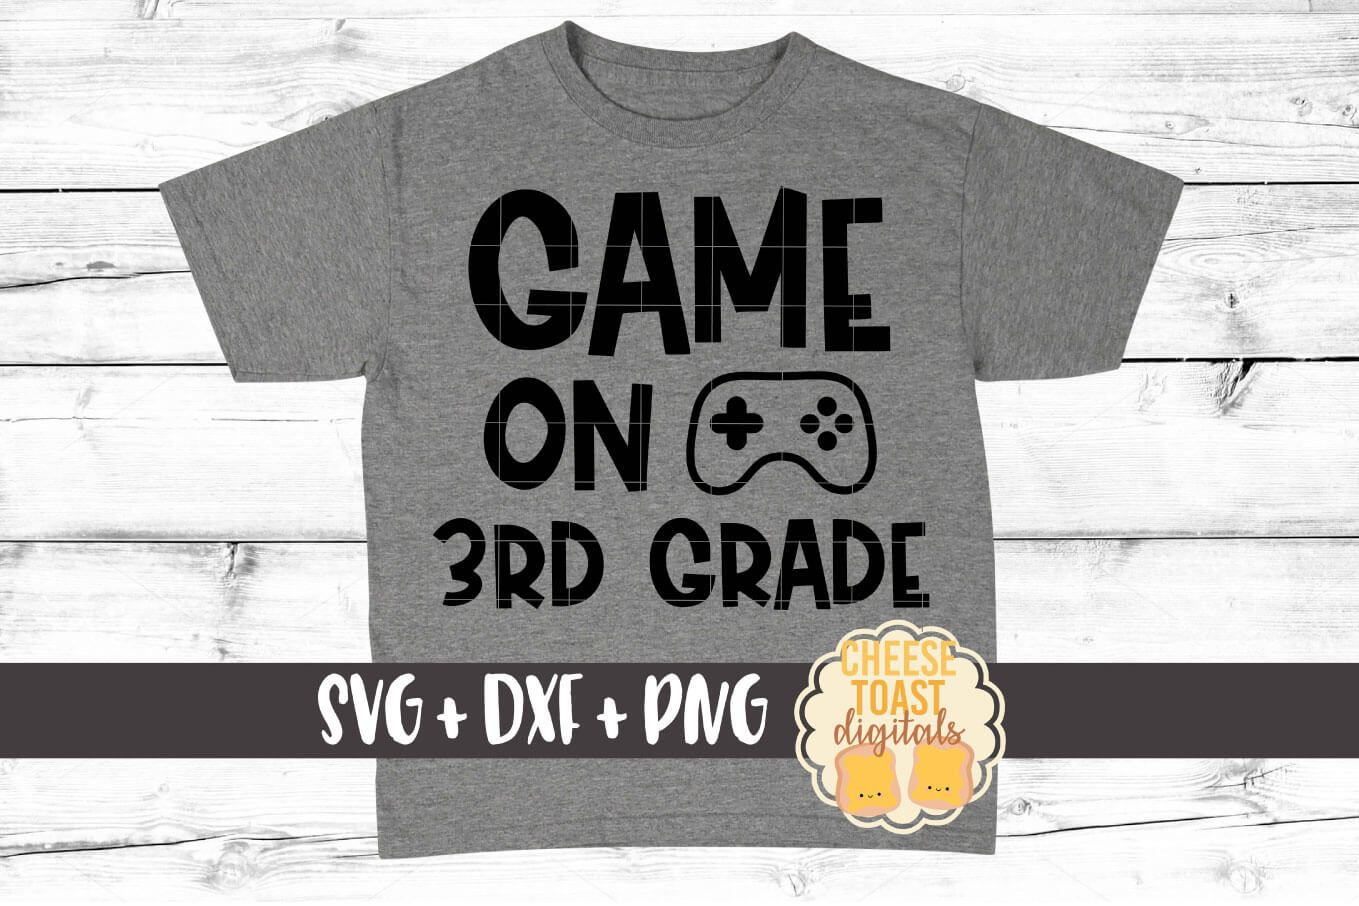 Game on 3rd Grade (Graphic) by CheeseToastDigitals